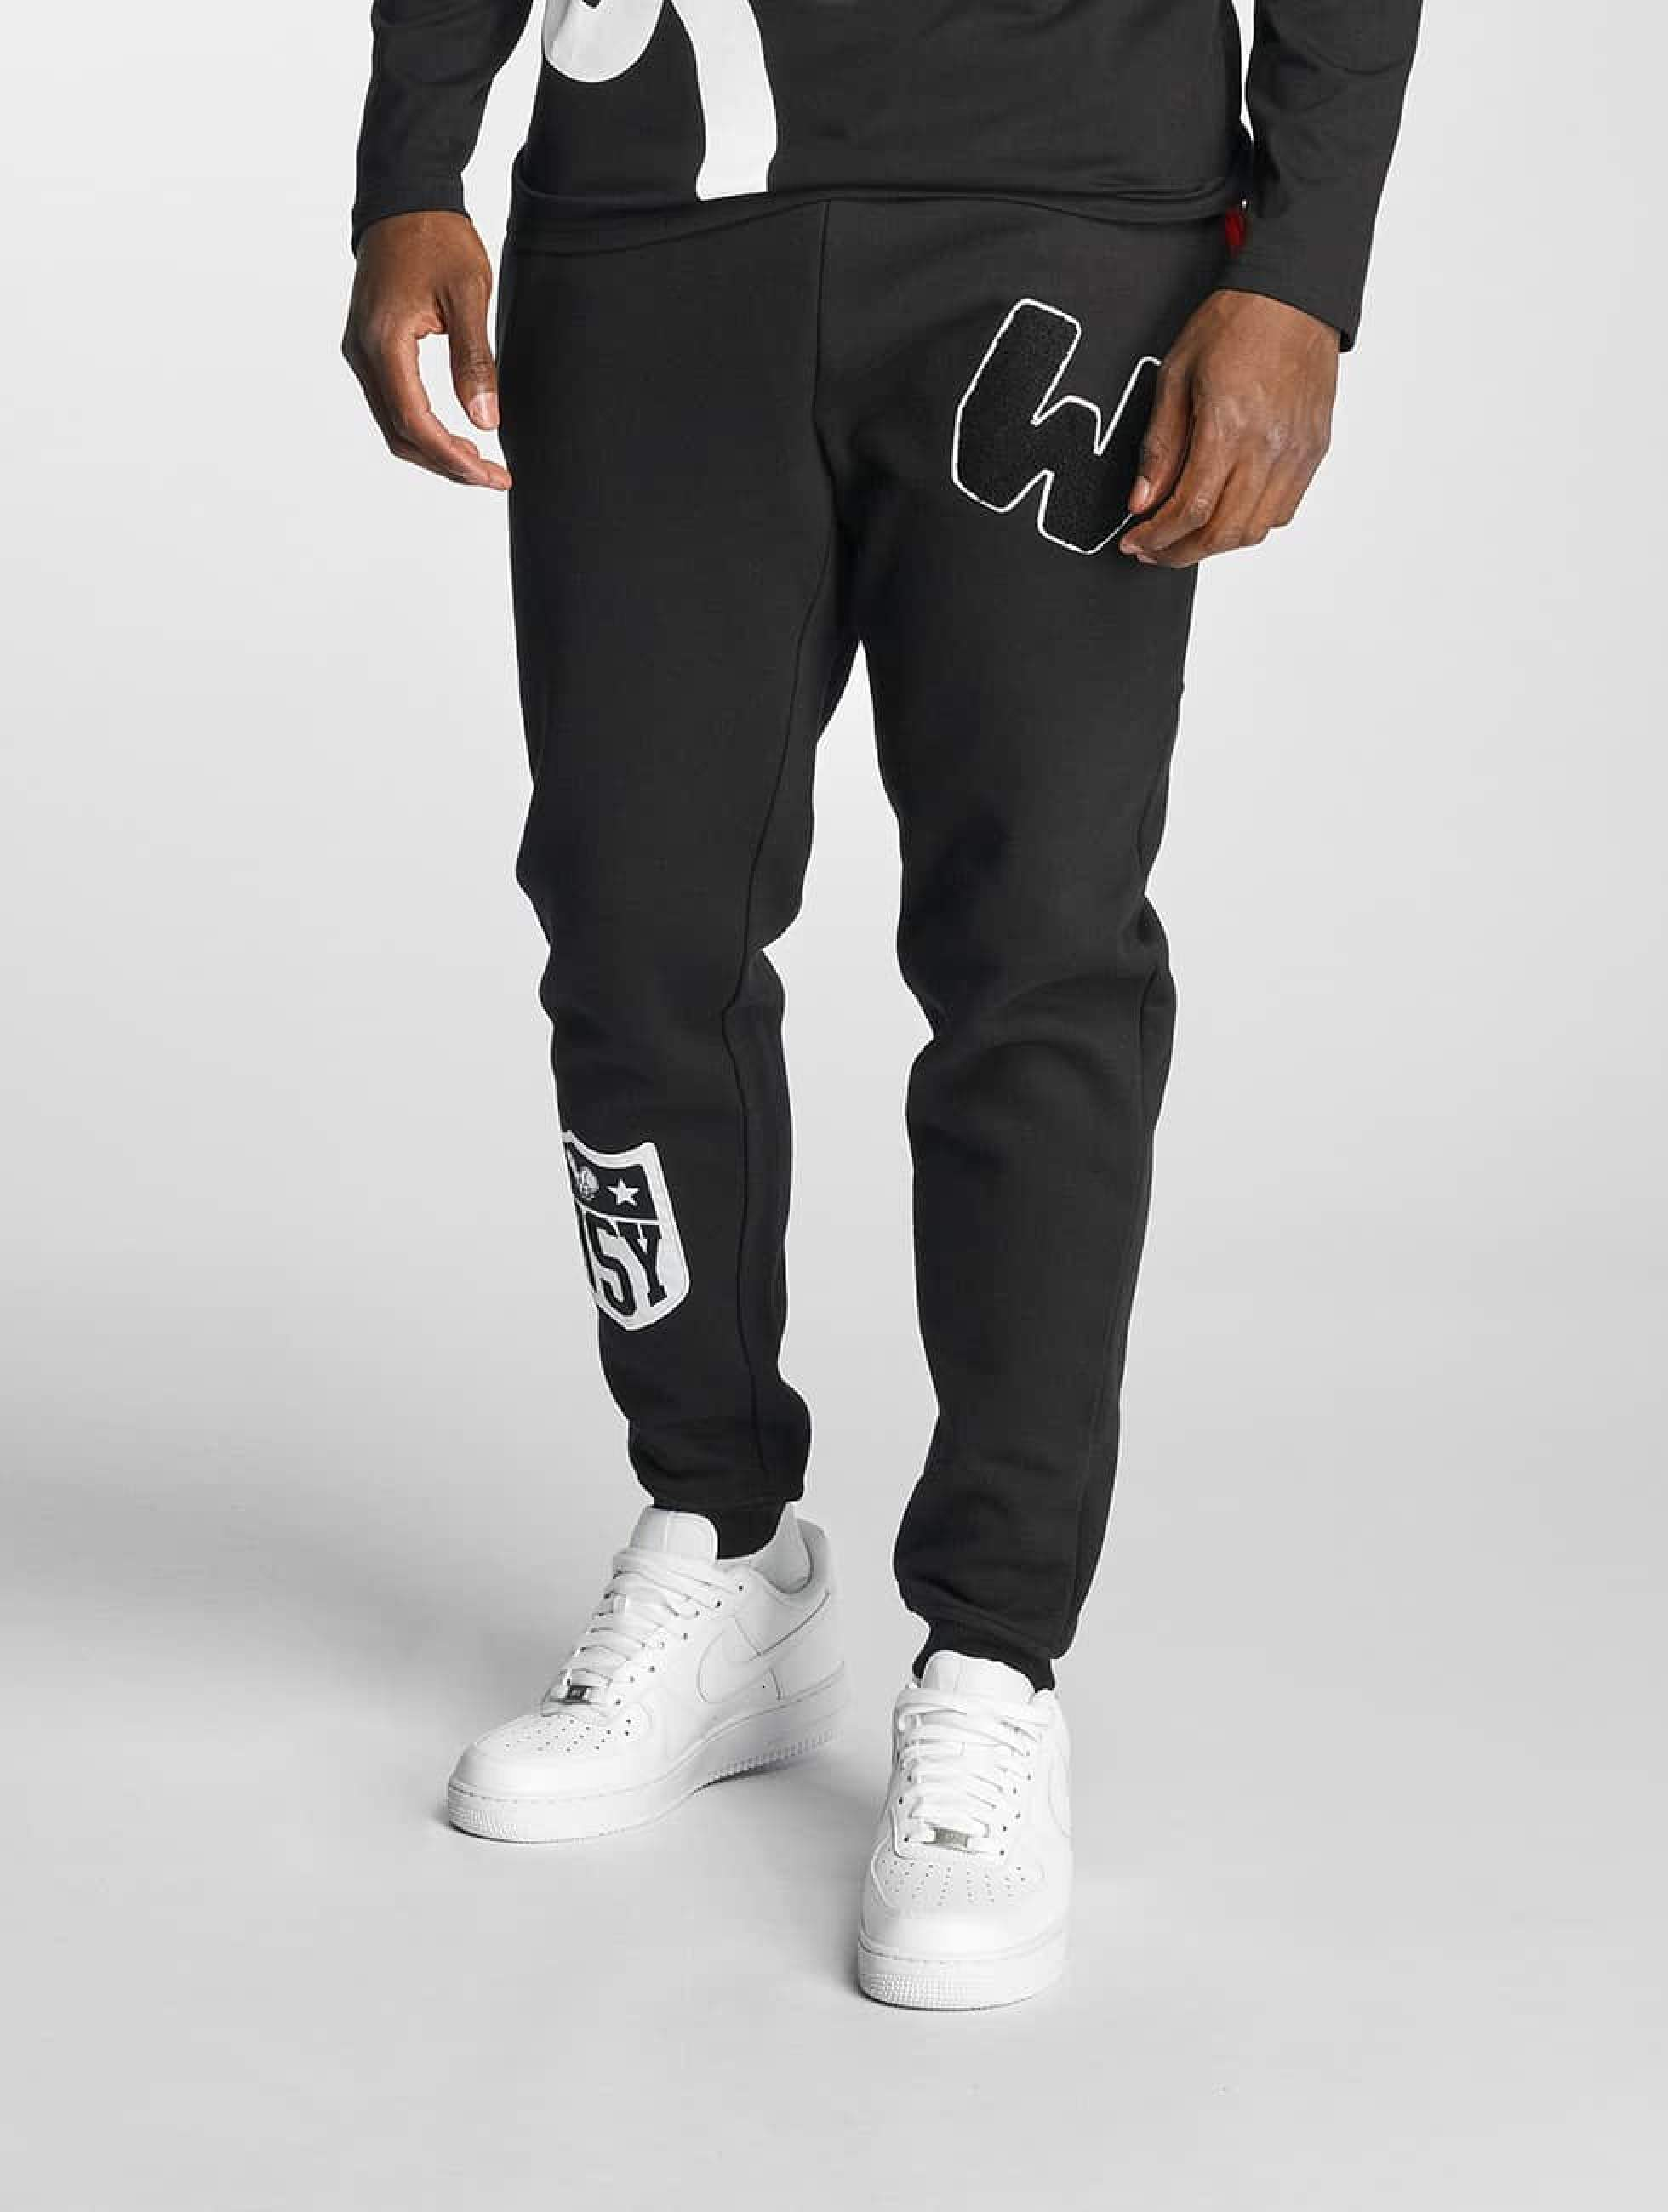 Who Shot Ya? / Sweat Pant Badrabbit in black 2XL